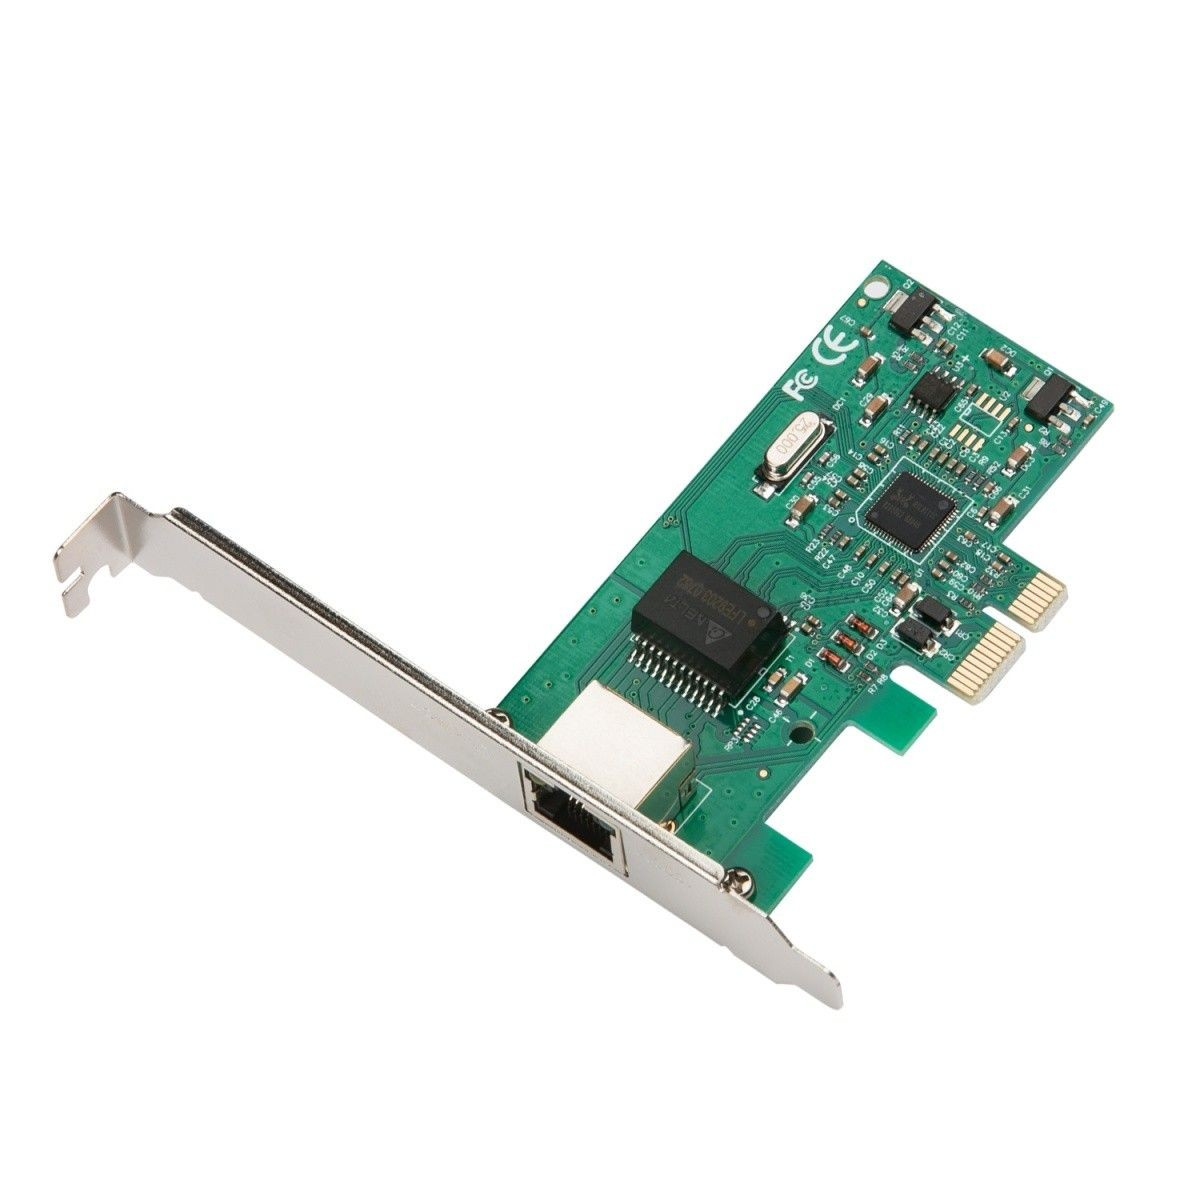 iTec i-tec PCI-E Gigabit Ethernet Card 1000/100/10MBps Regular and Low Profile